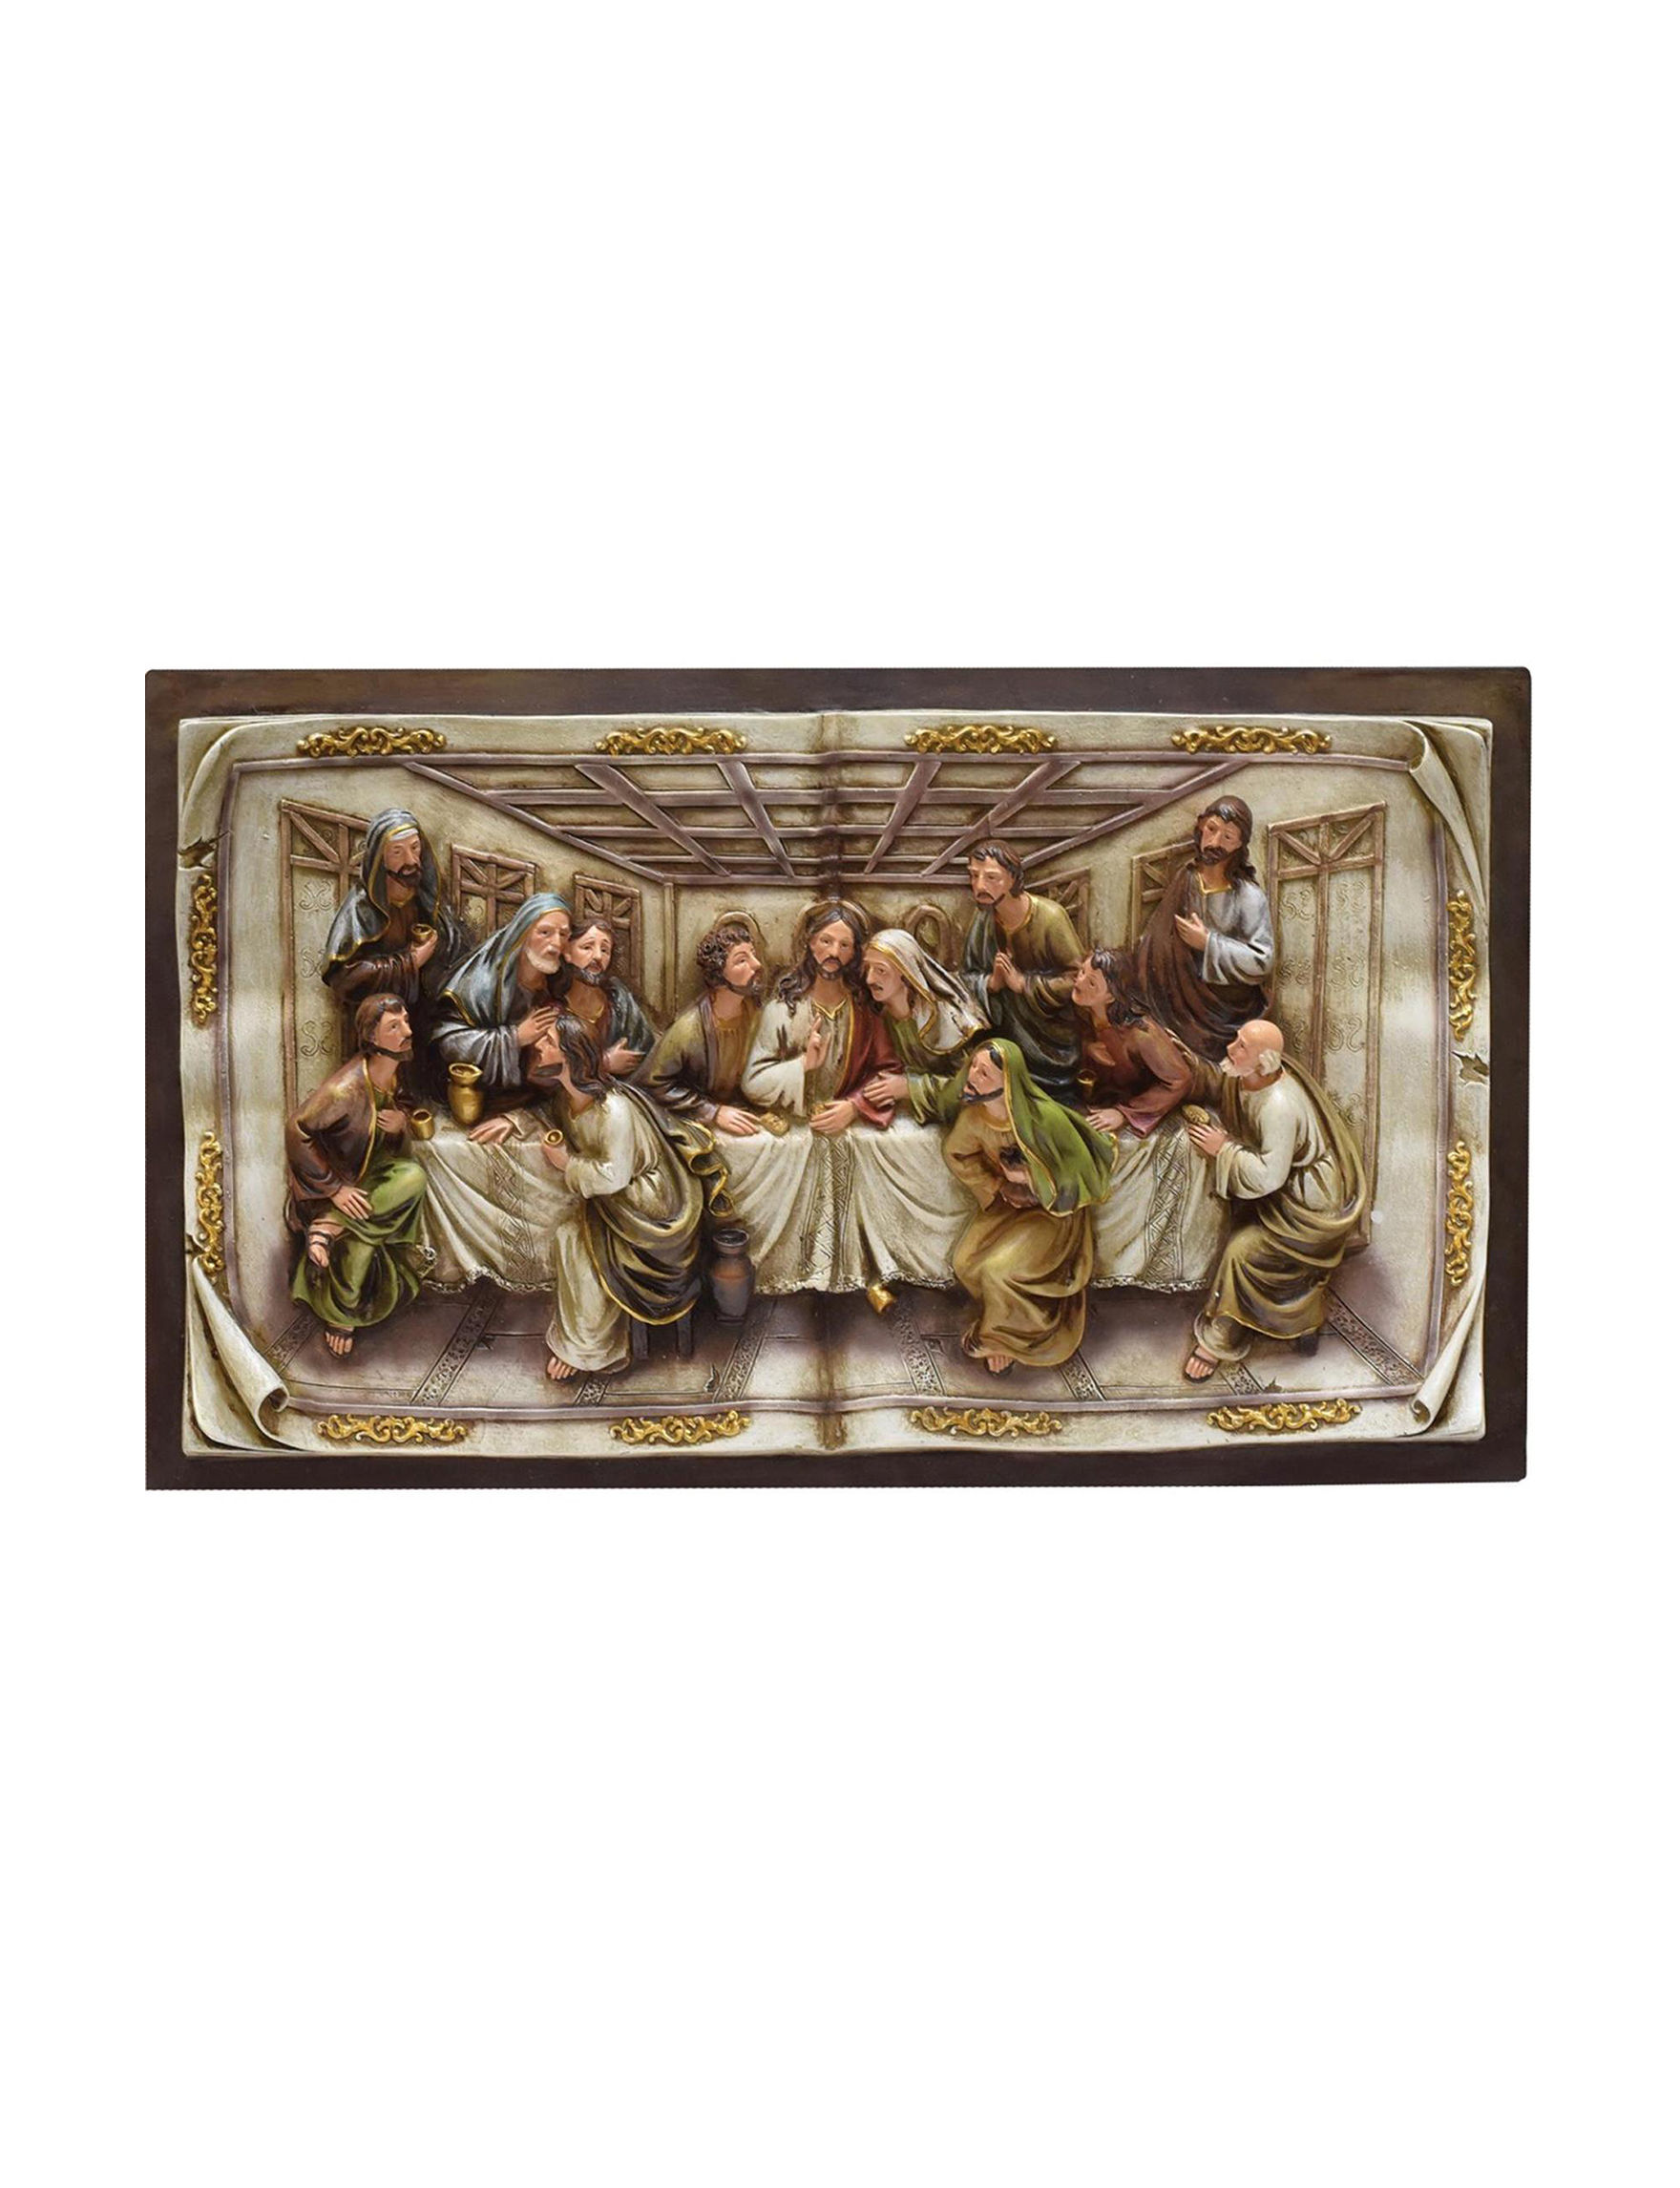 Northlight Brown Multi Decorative Objects Wall Art Holiday Decor Home Accents Wall Decor